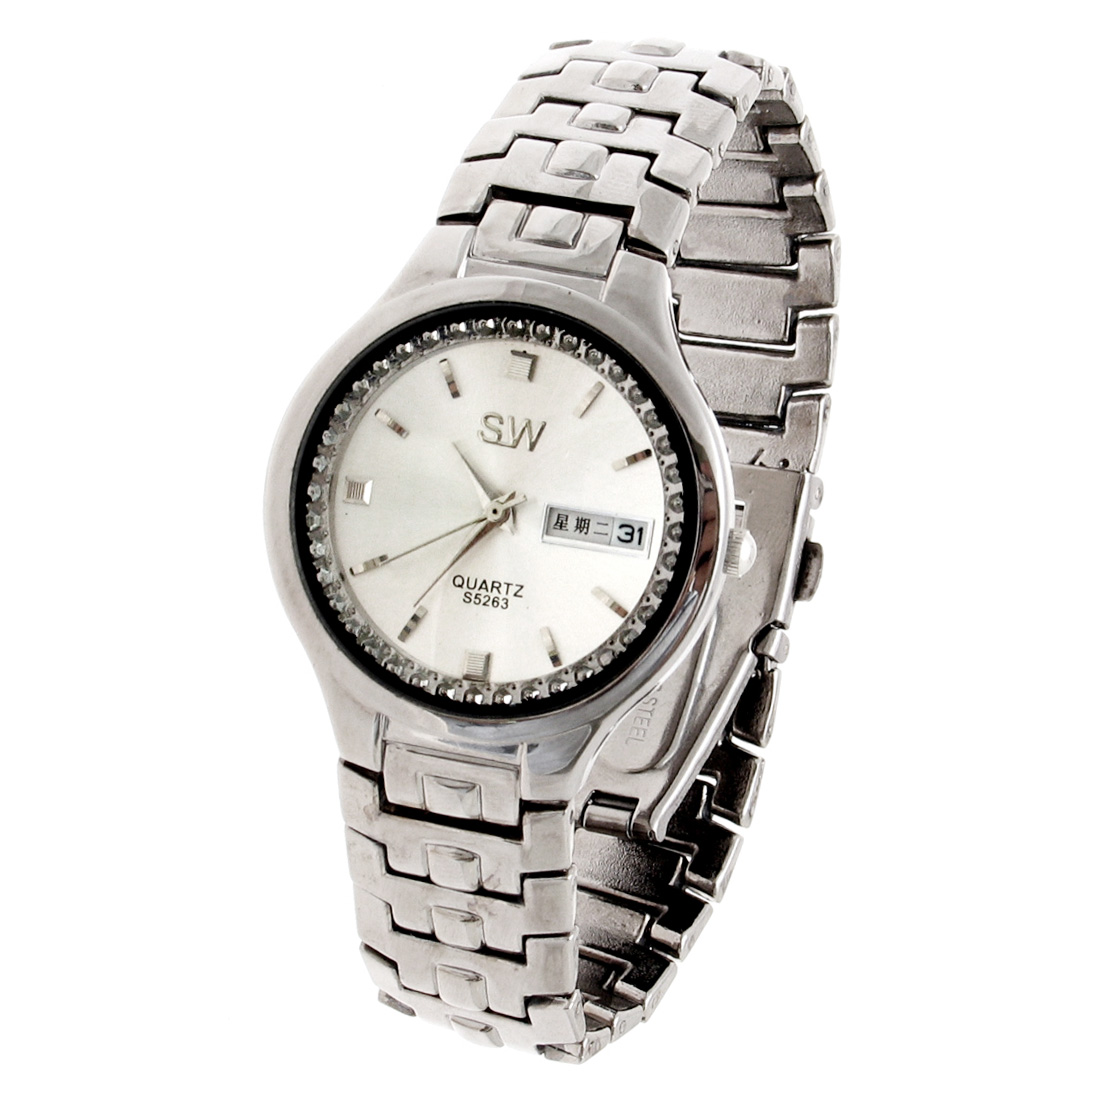 Fashion Jewelry Quartz Watch - Silver